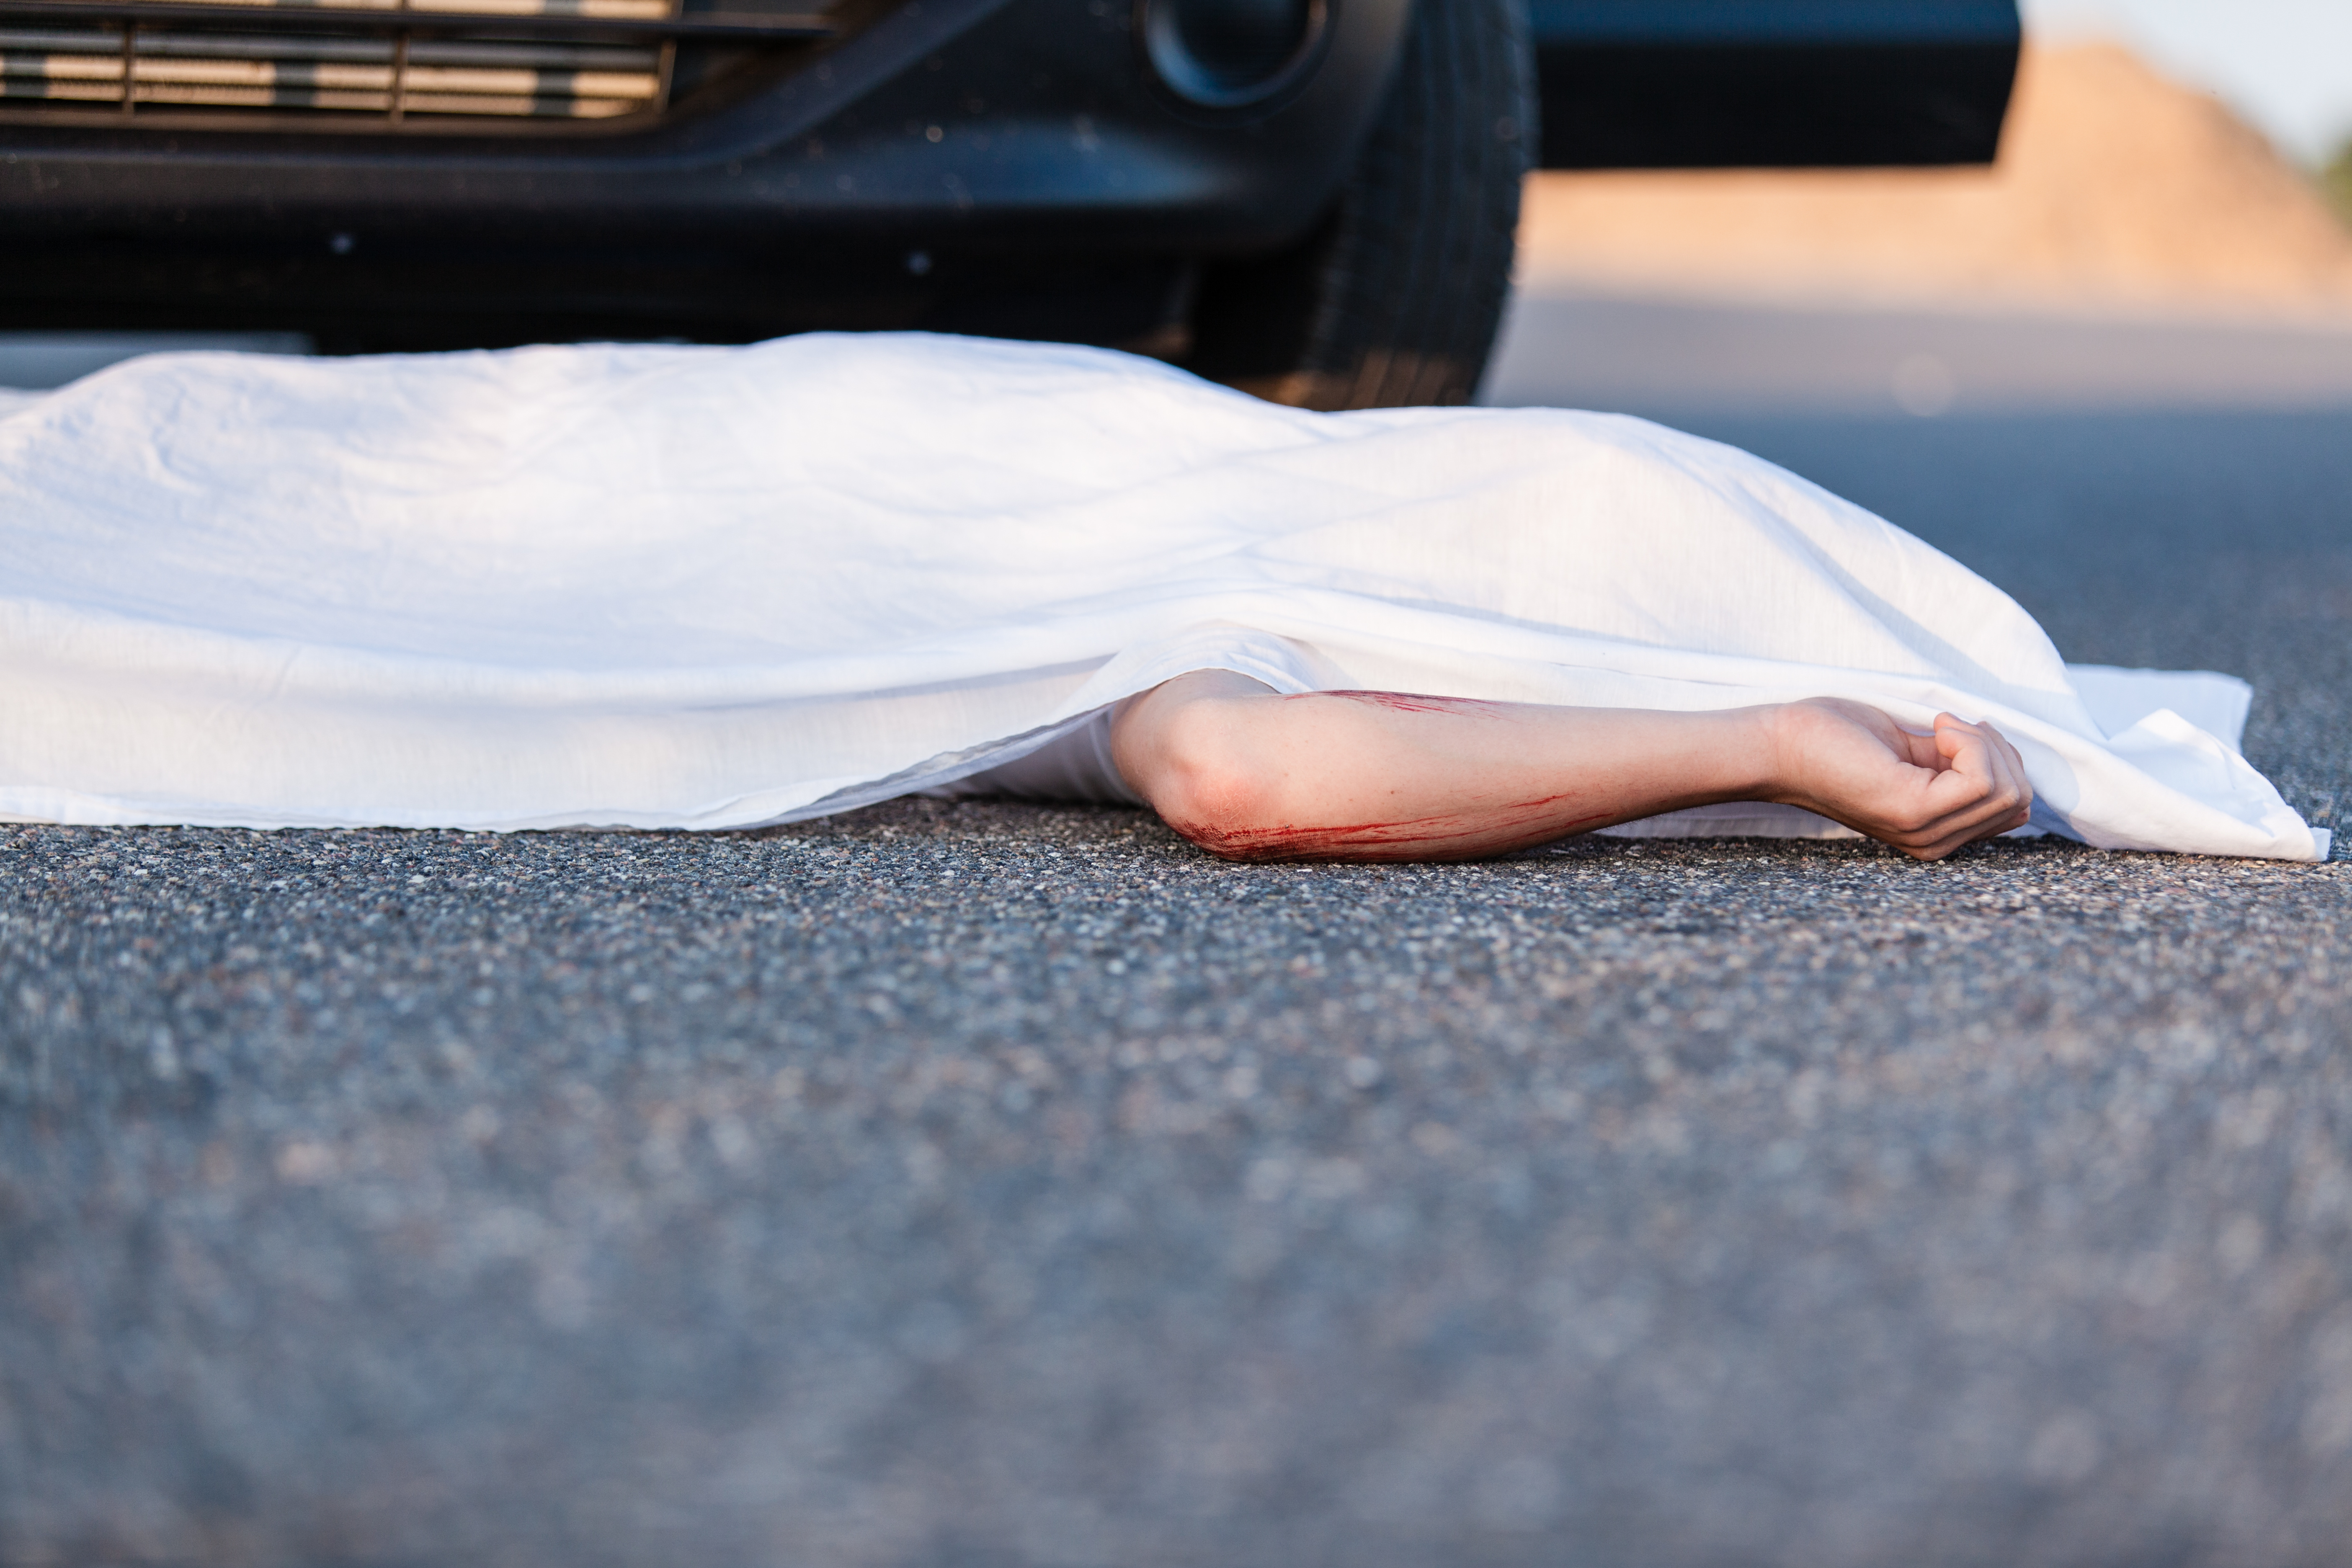 Body of a young child covered by a sheet